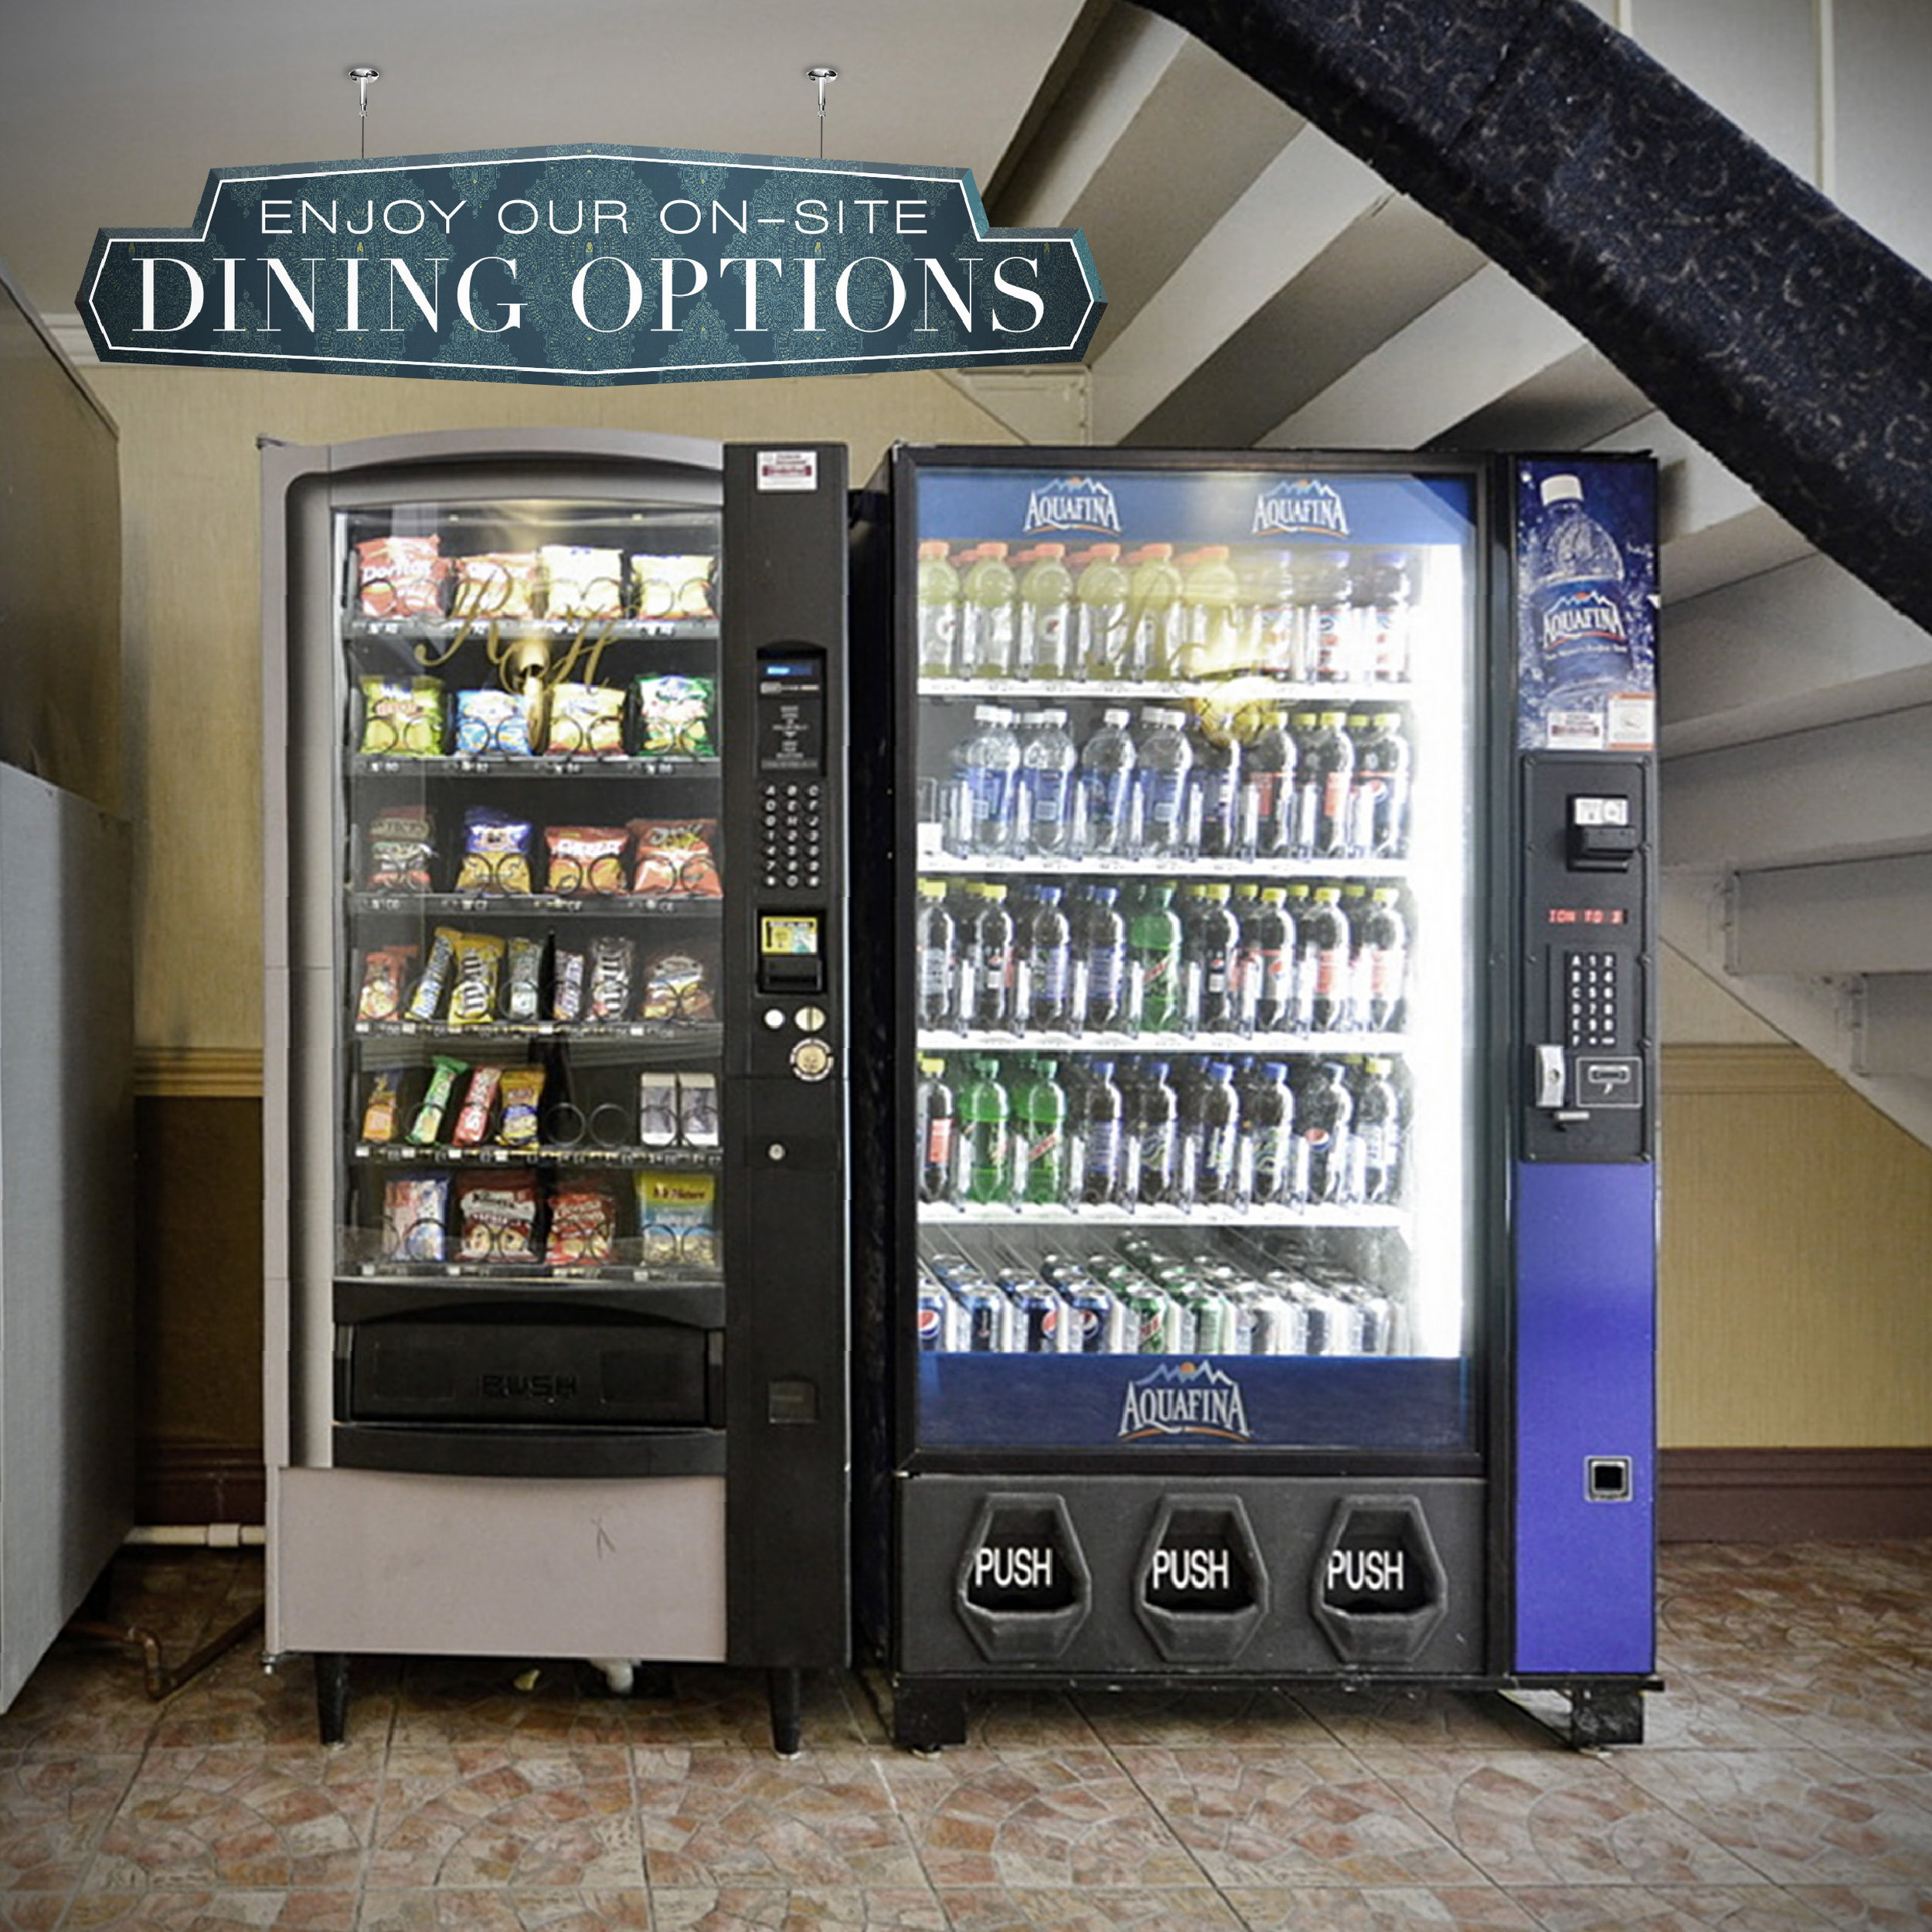 Dining_Options.jpg